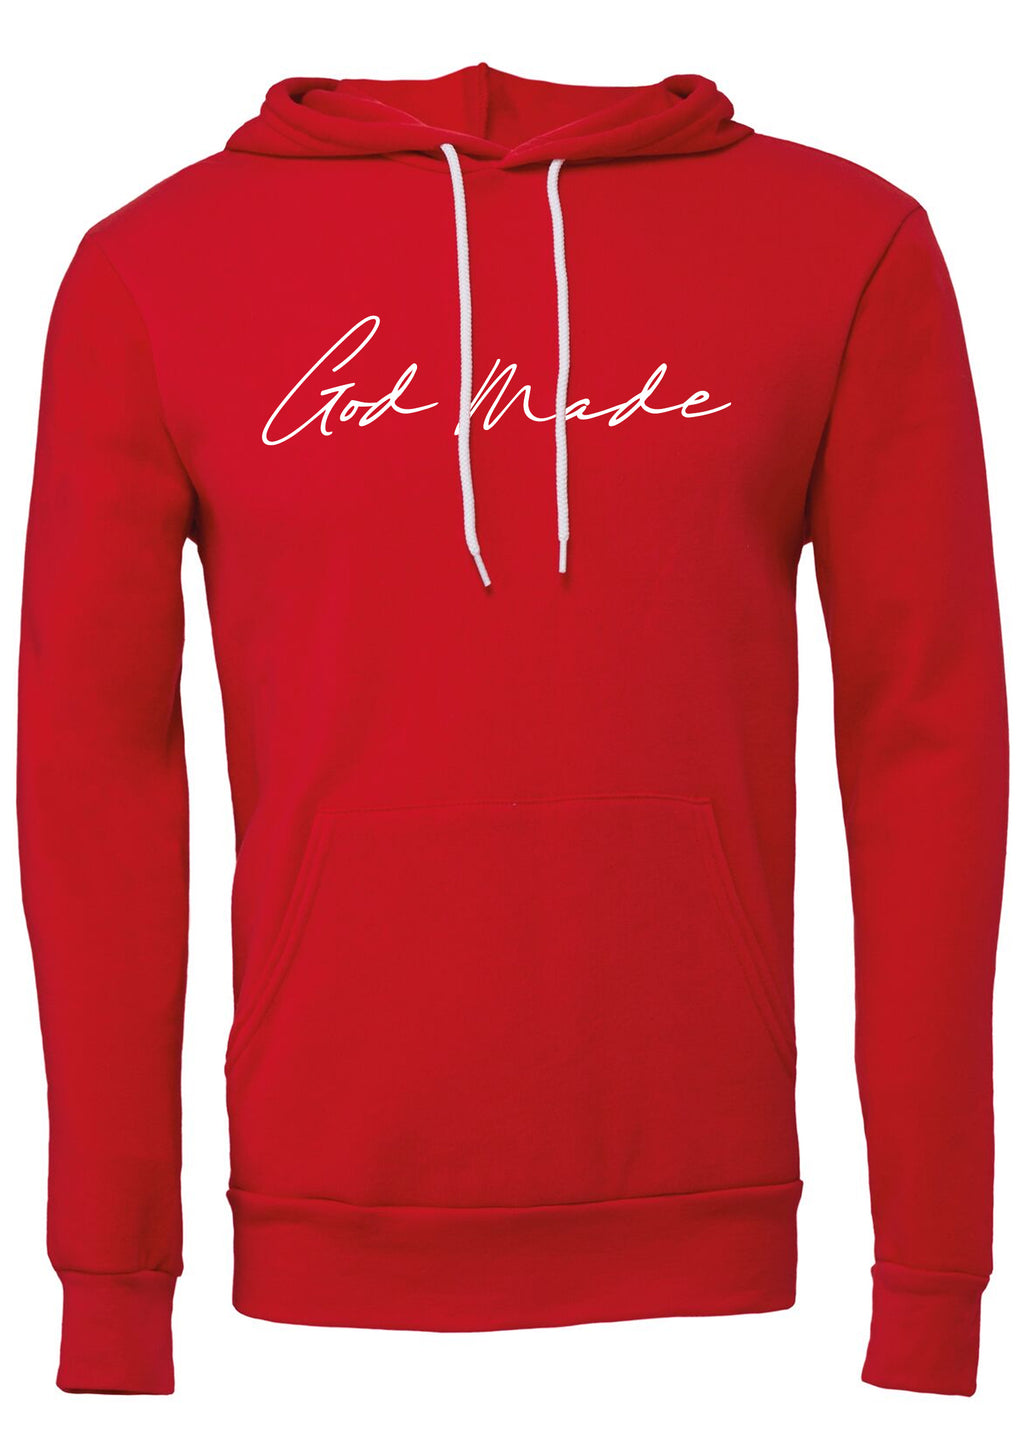 GOD MADE Unisex polycotton fleece pullover hoodie (Red)